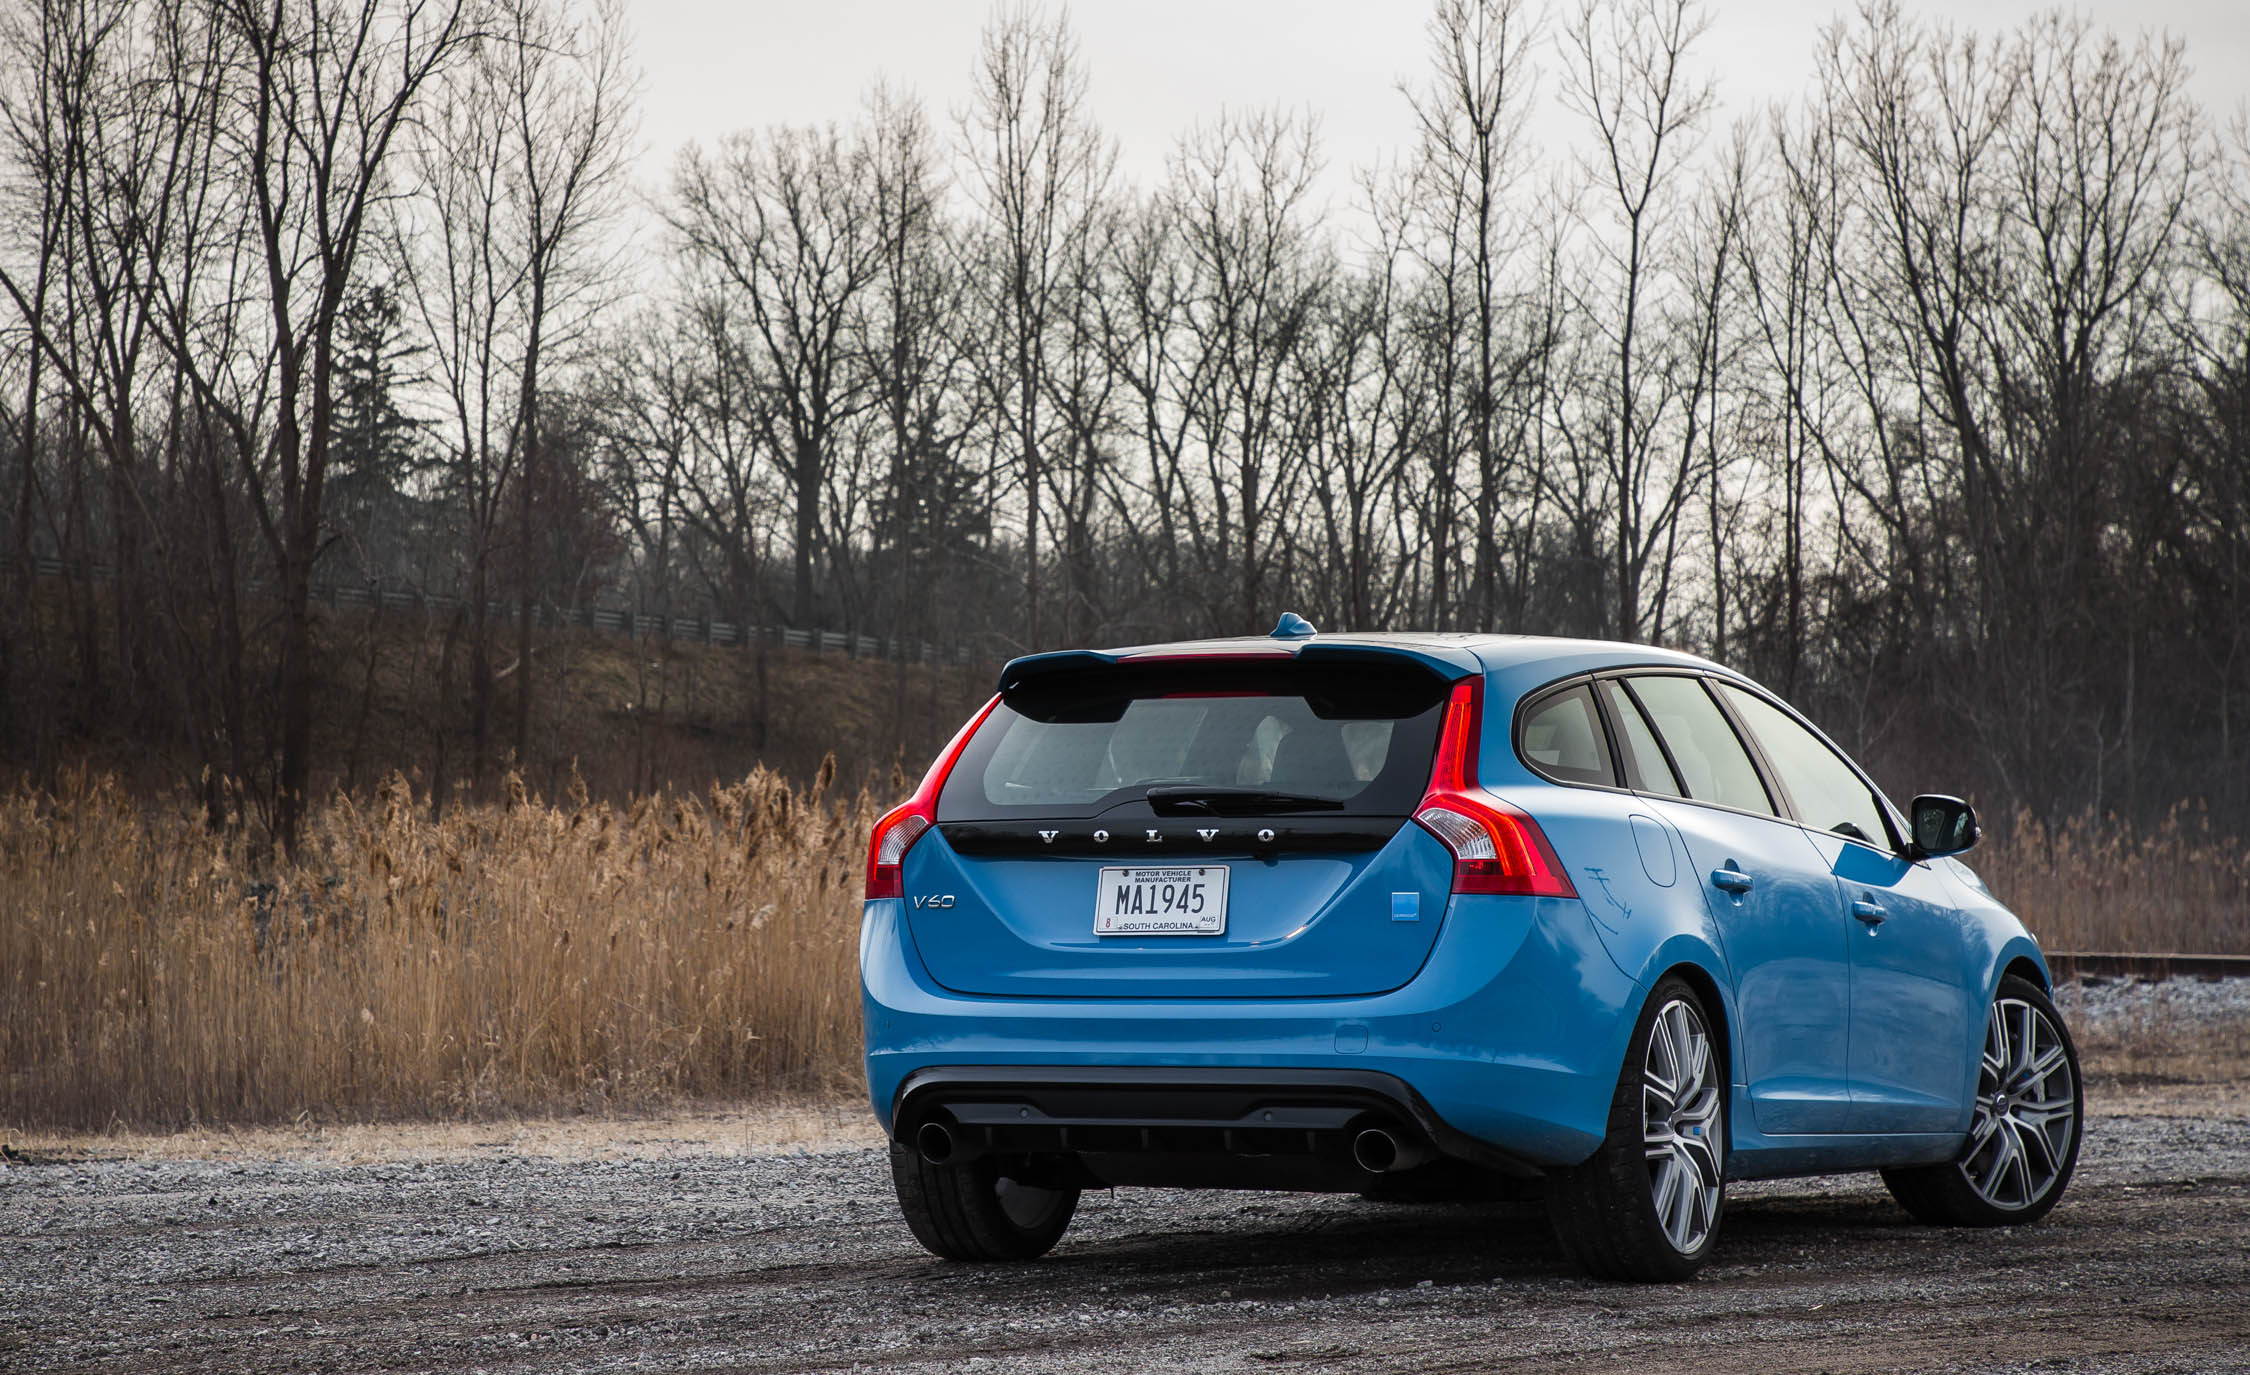 2017 Volvo V60 Polestar Exterior Rear (View 14 of 53)